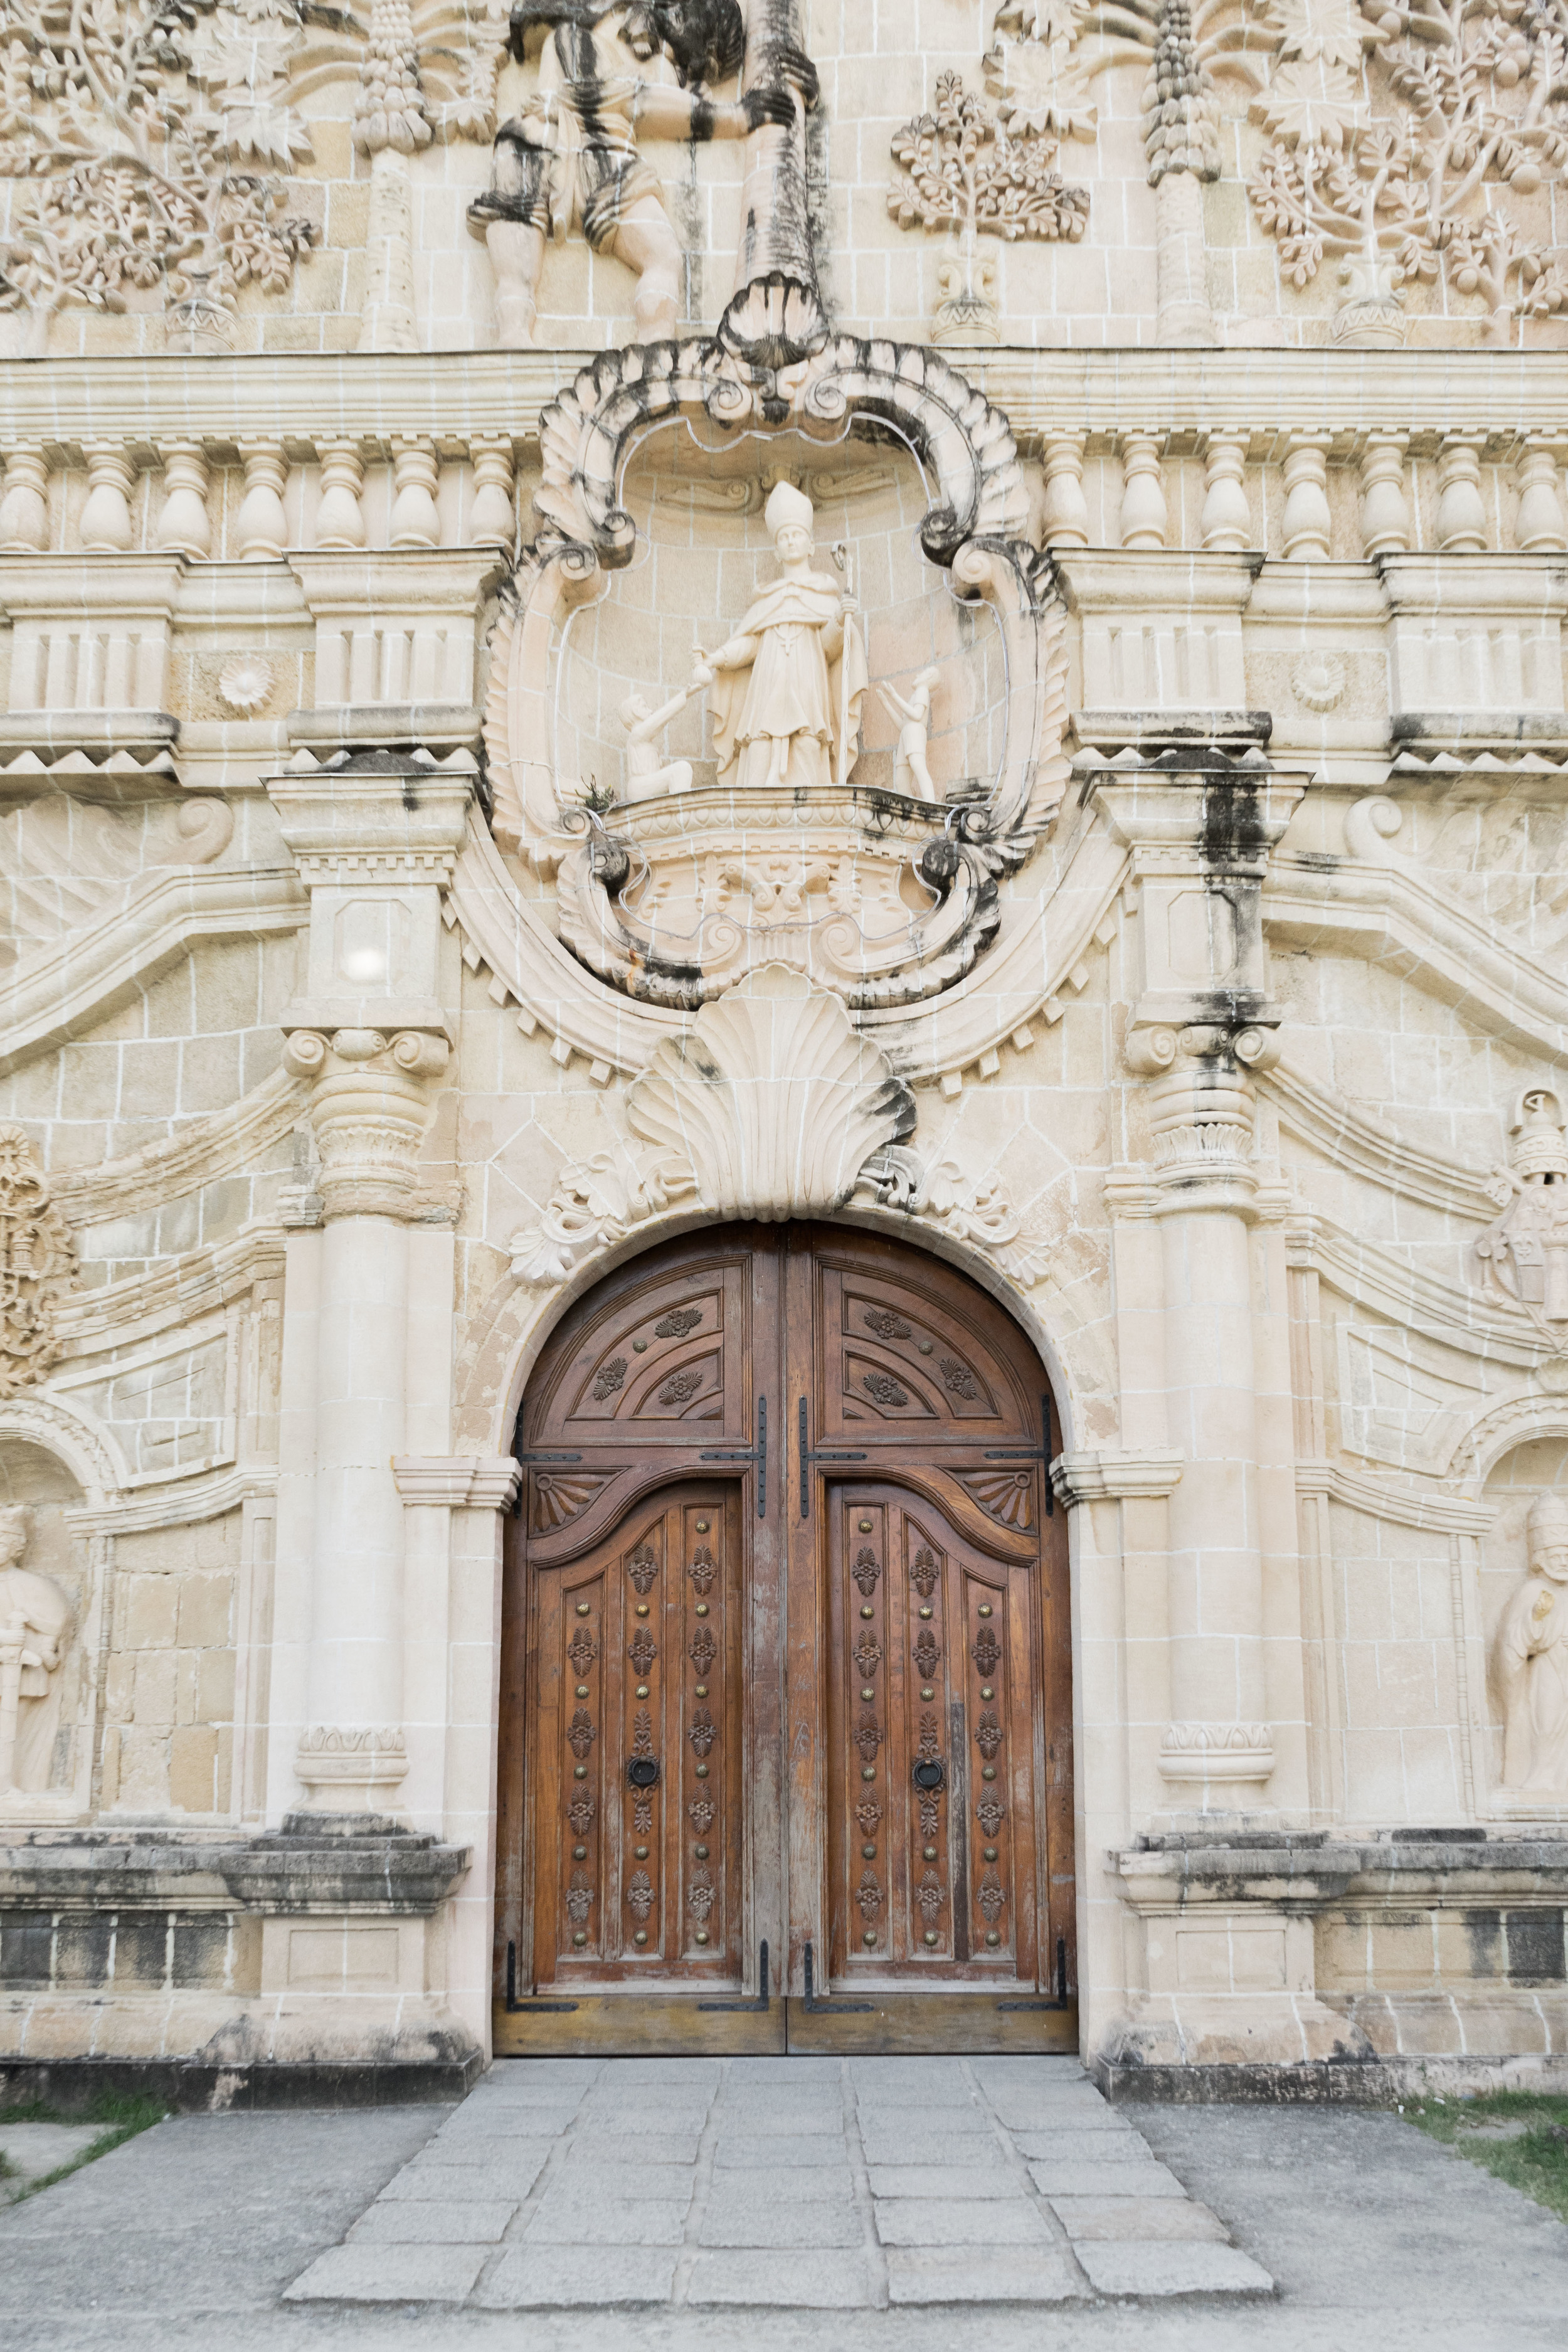 The facade of the Miag-ao Church built in the 1700s. Made of Coral.